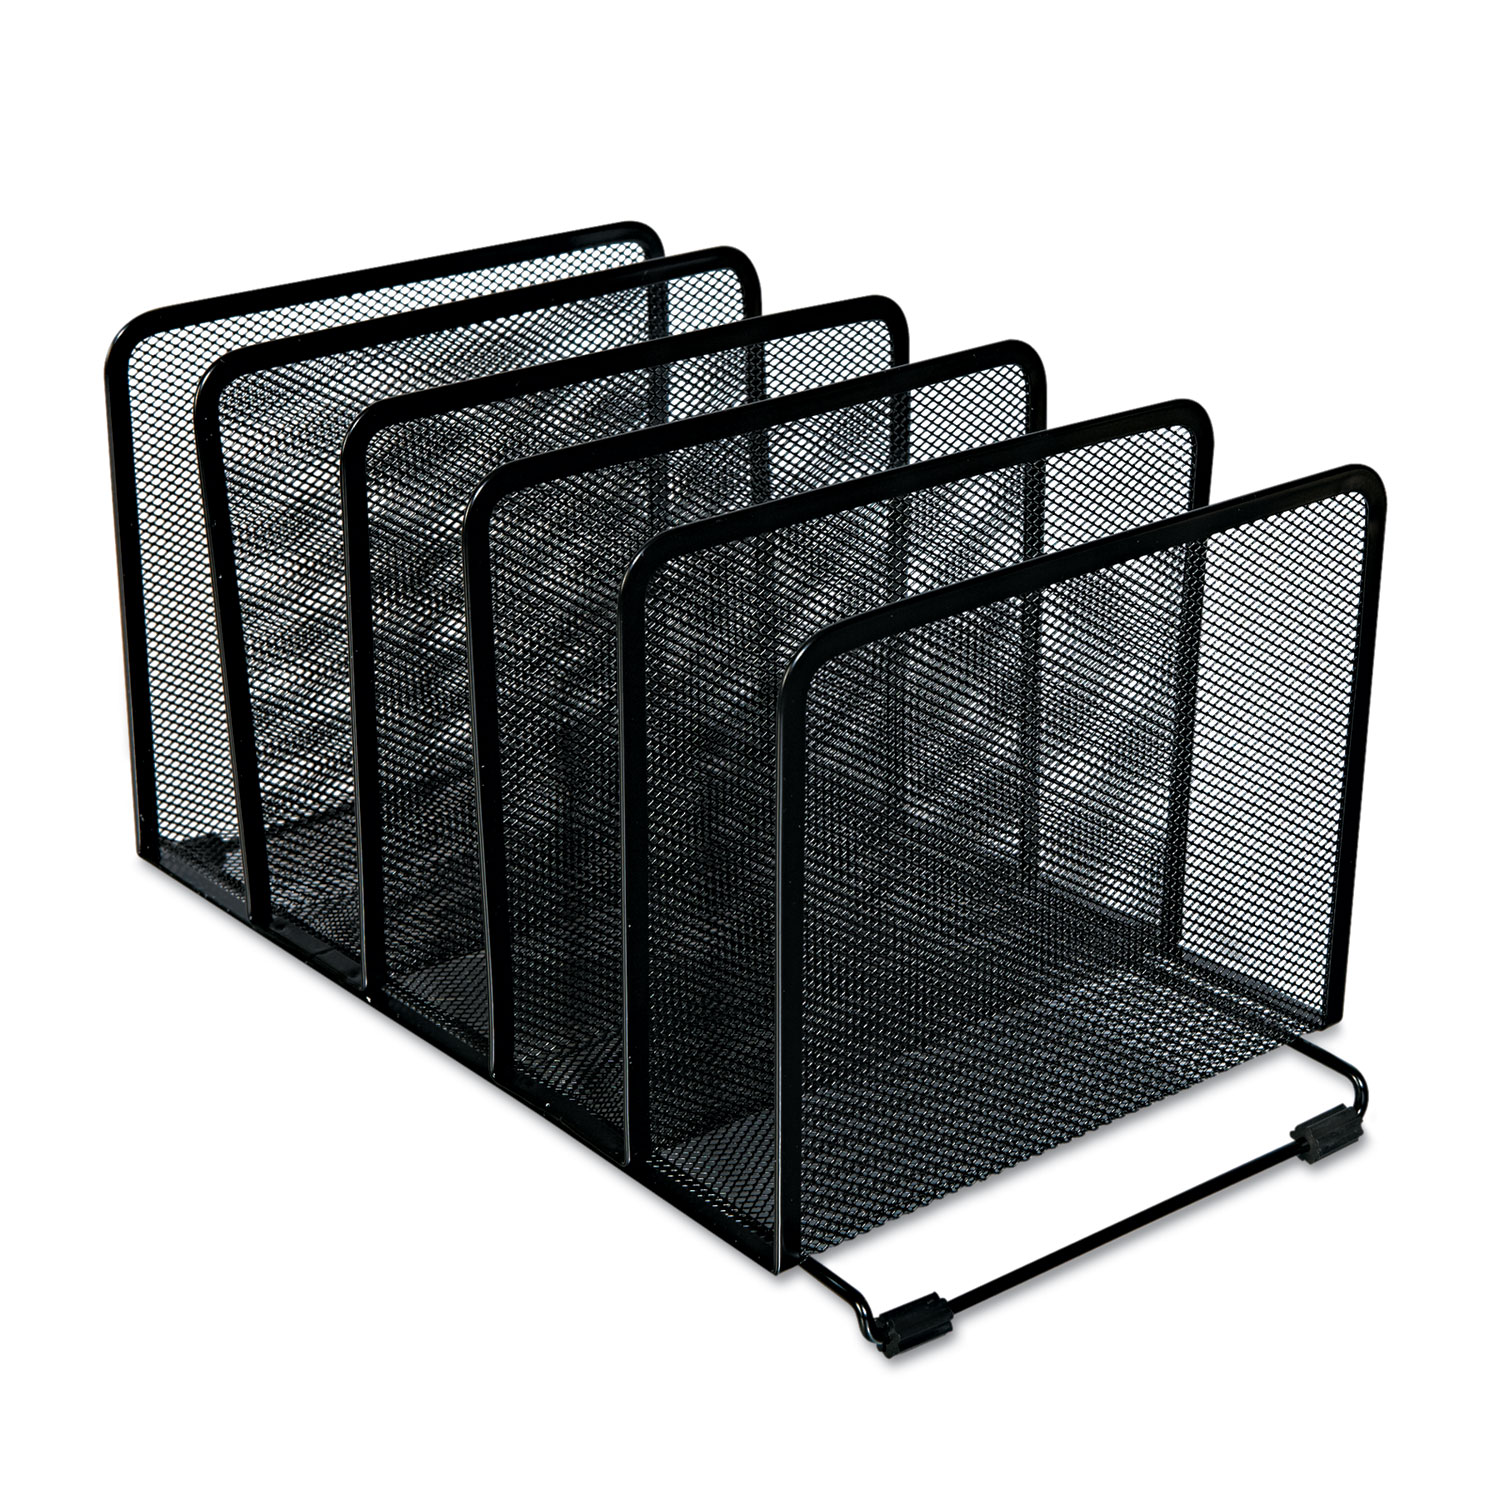 """Deluxe Mesh Stacking Sorter, 5 Sections, Letter to Legal Size Files, 14.63"""" x 8.13"""" x 7.5"""", Black"""